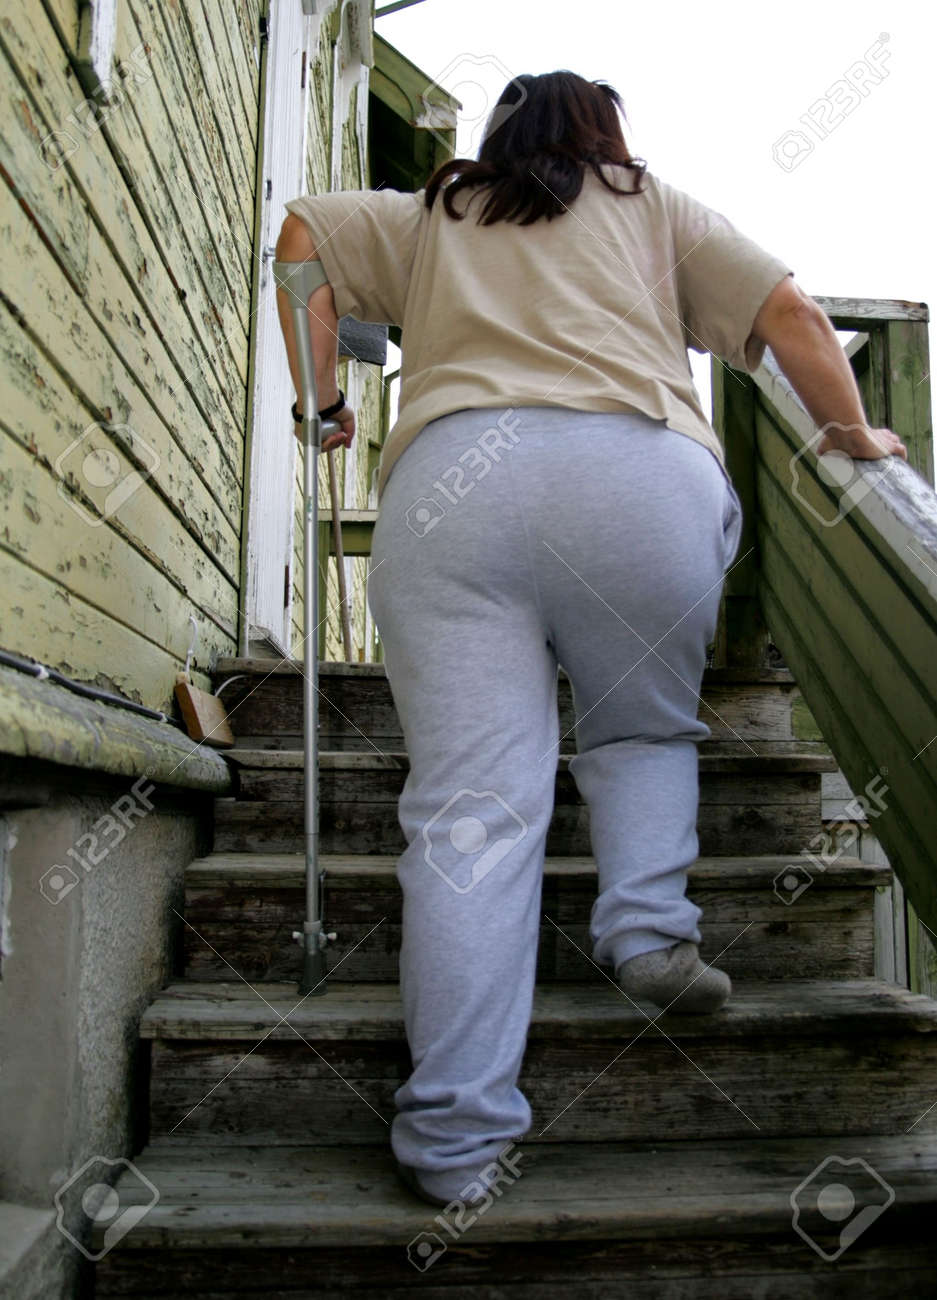 Obese woman with crutch Stock Photo - 5792512